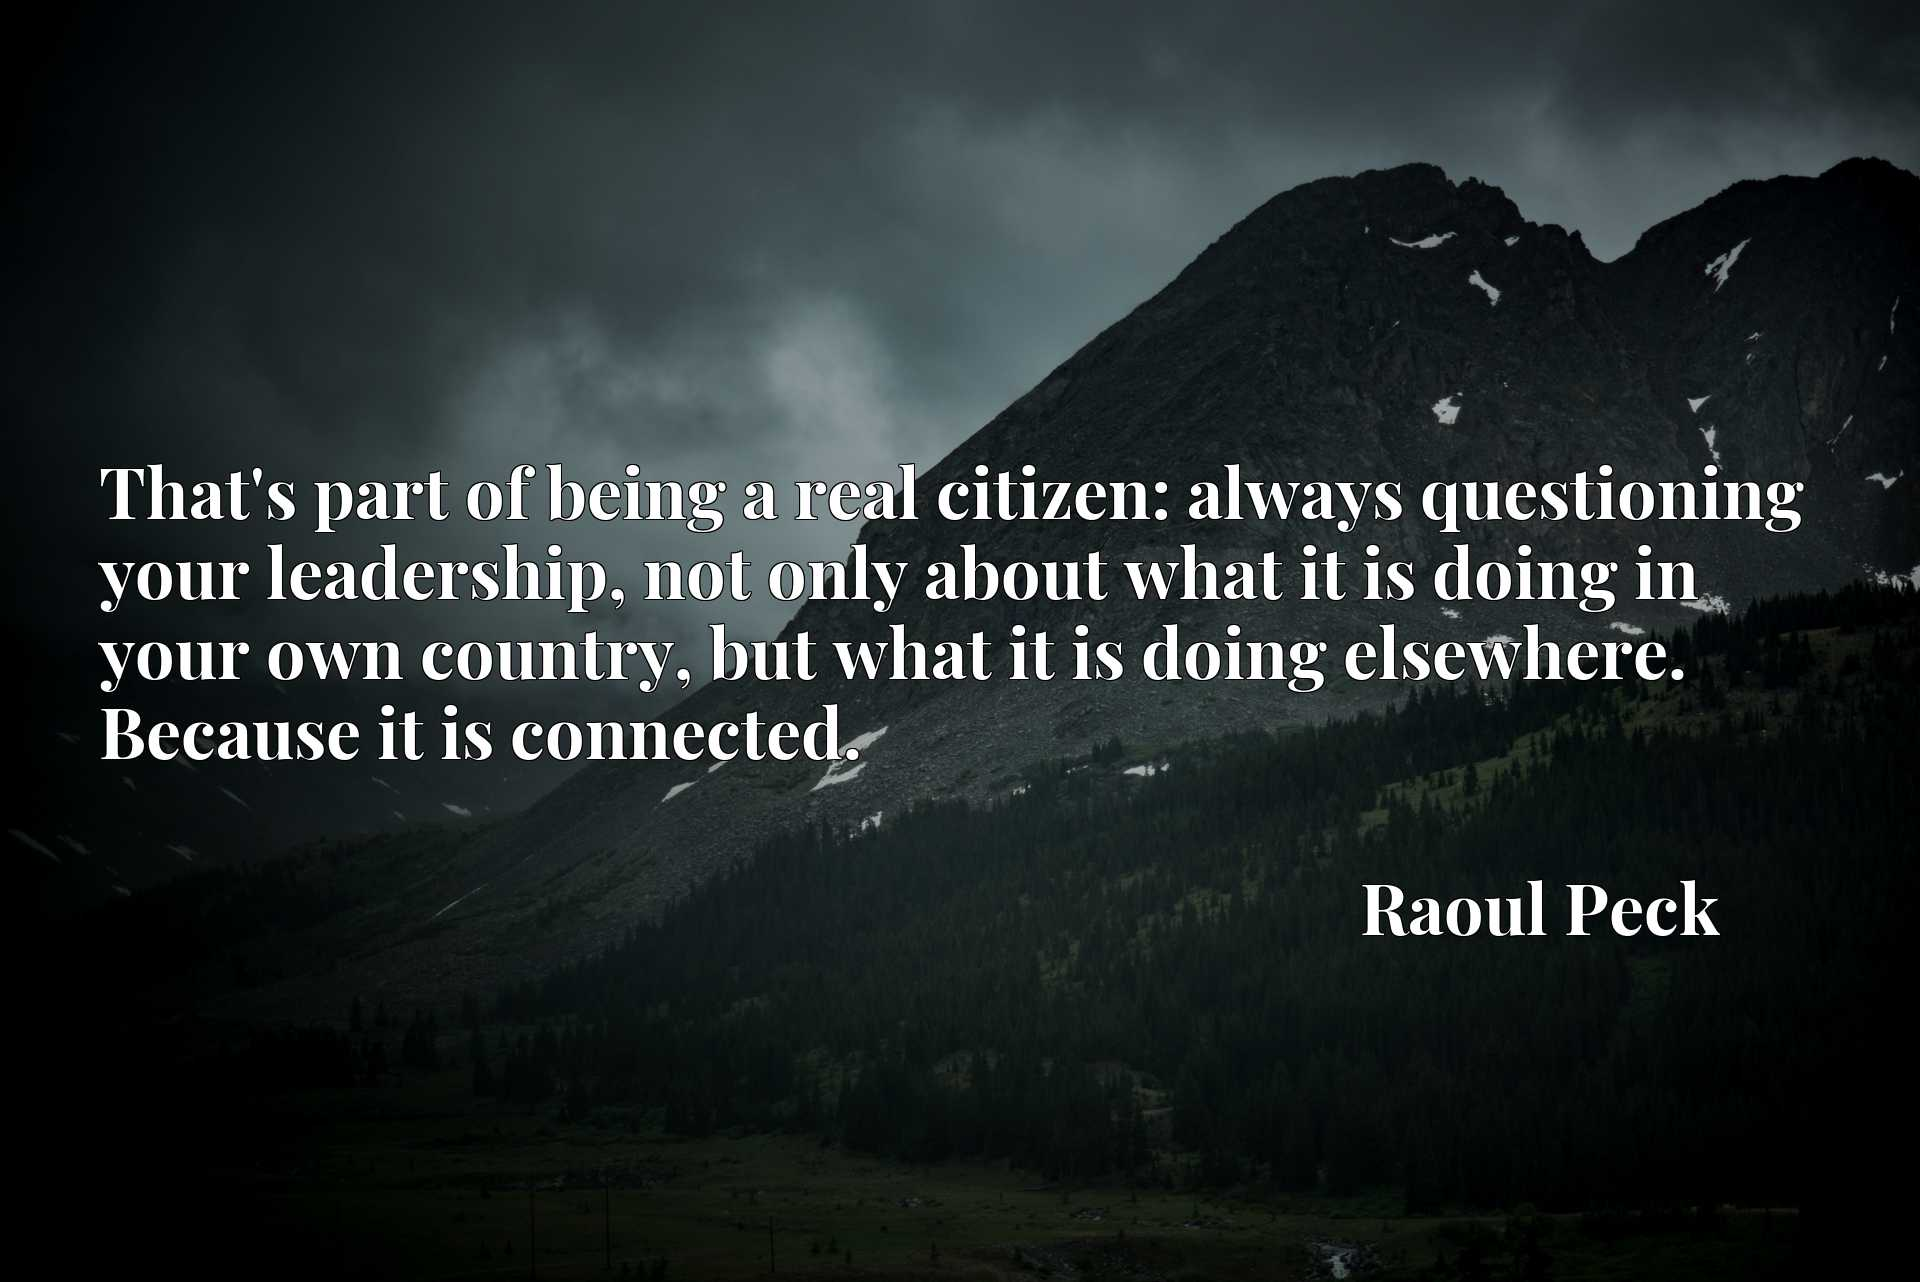 Quote Picture :That's part of being a real citizen: always questioning your leadership, not only about what it is doing in your own country, but what it is doing elsewhere. Because it is connected.